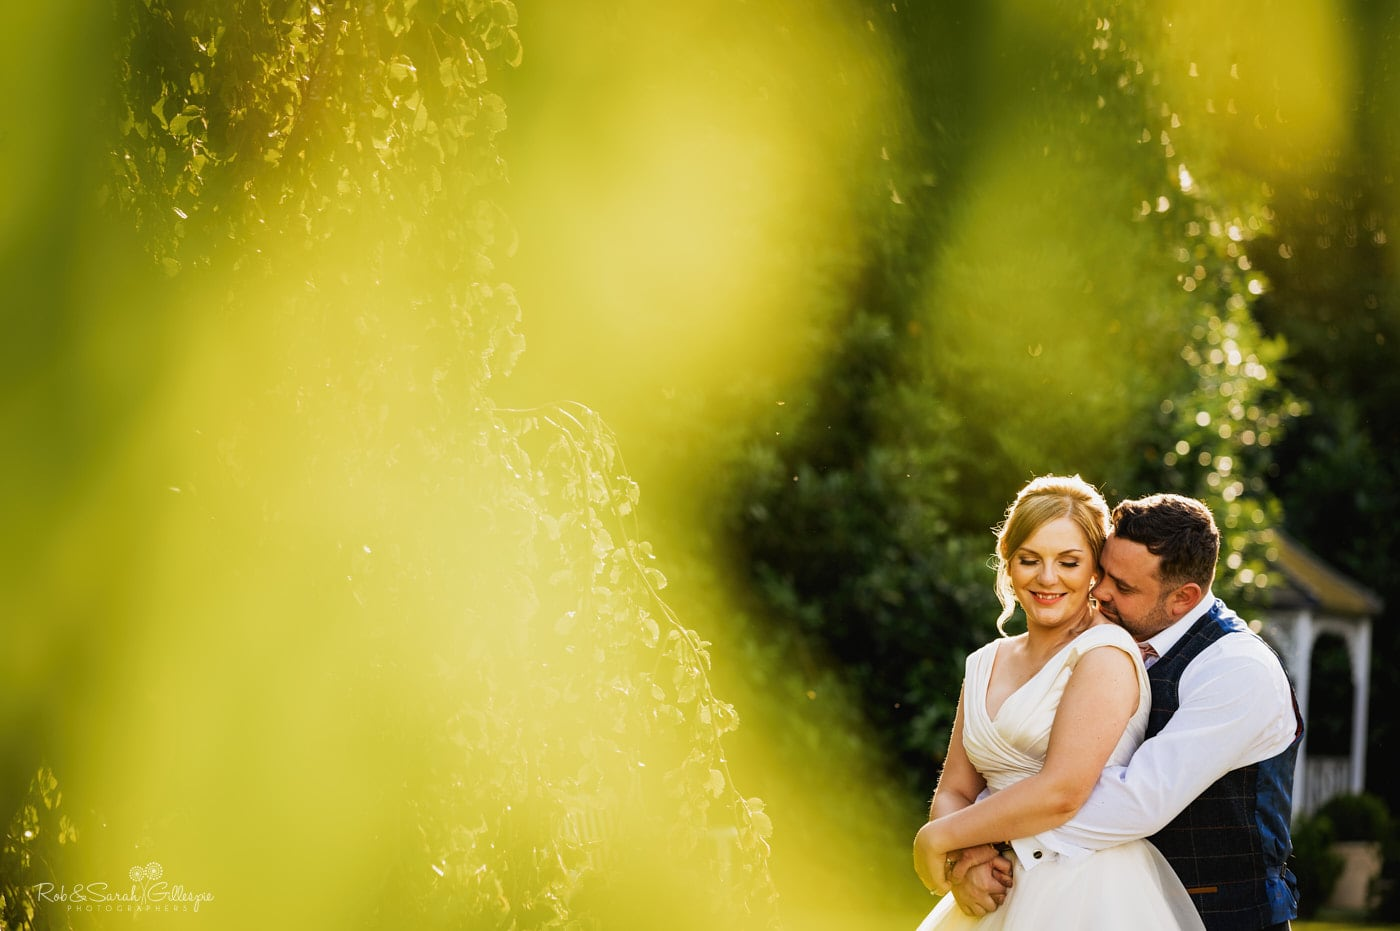 Wedding photography at Pendrell Hall in Staffordshire